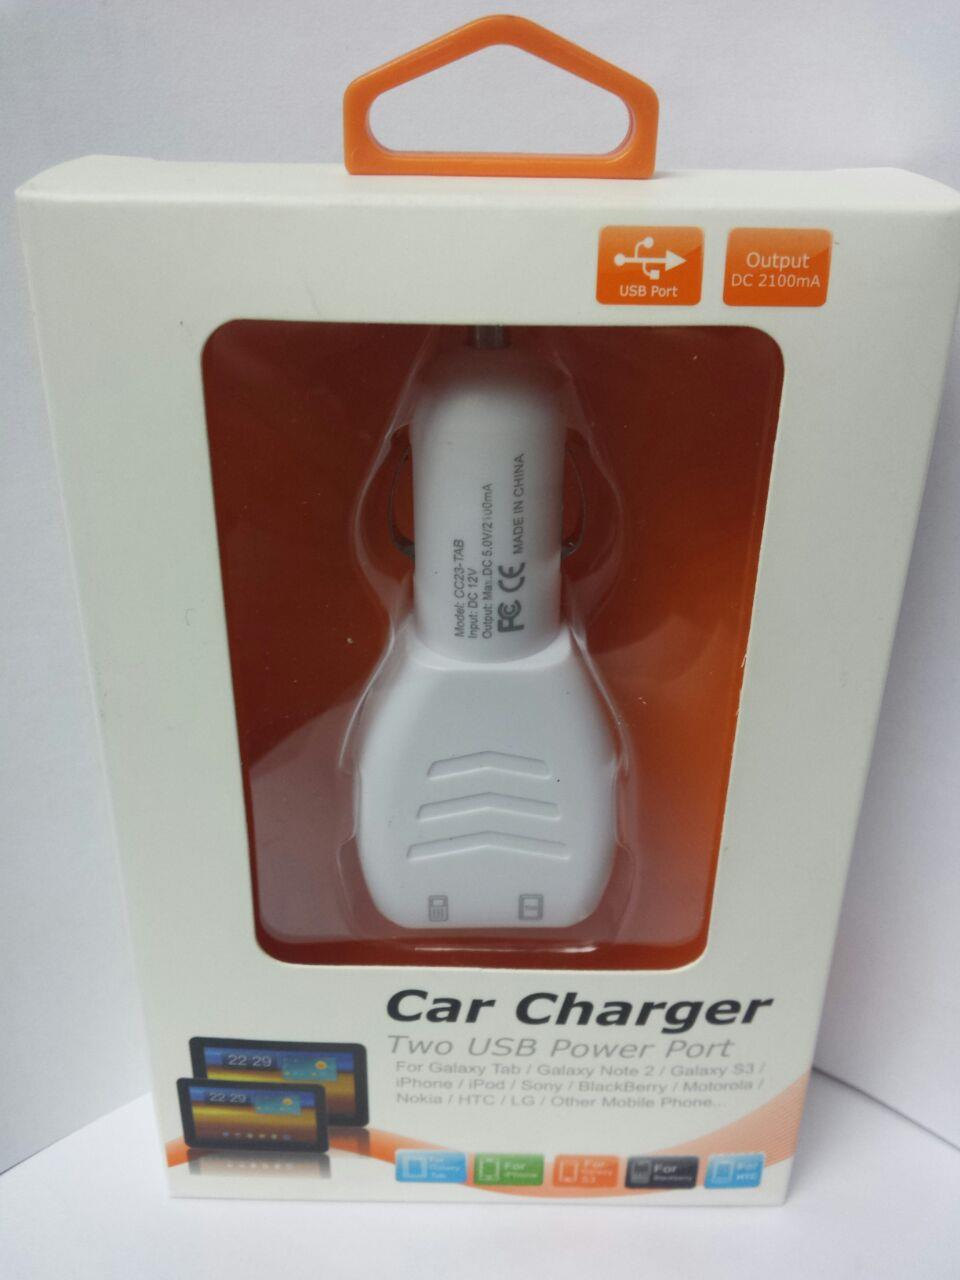 Two USB Port Universal Car Charger High Power Charging Rapid Charging